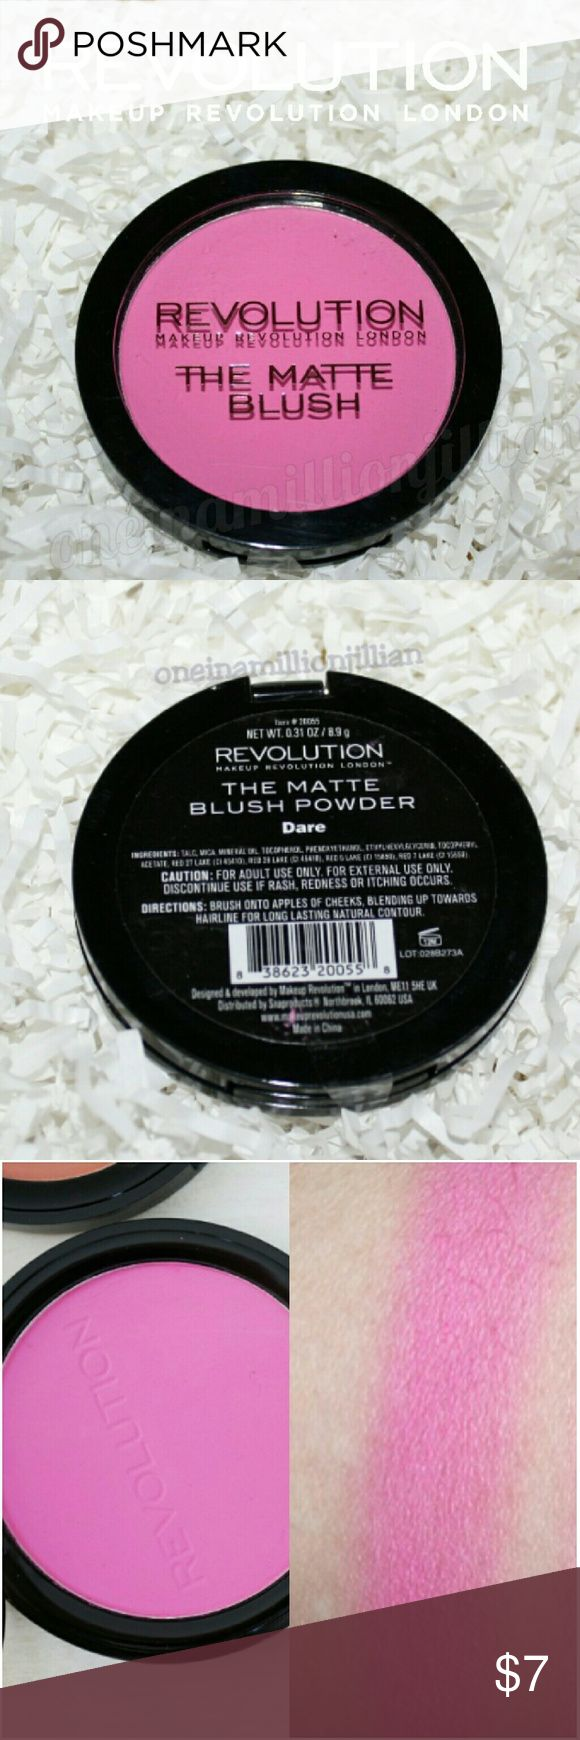 HOLD Makeup Revolution The Matte Blush Boutique (With